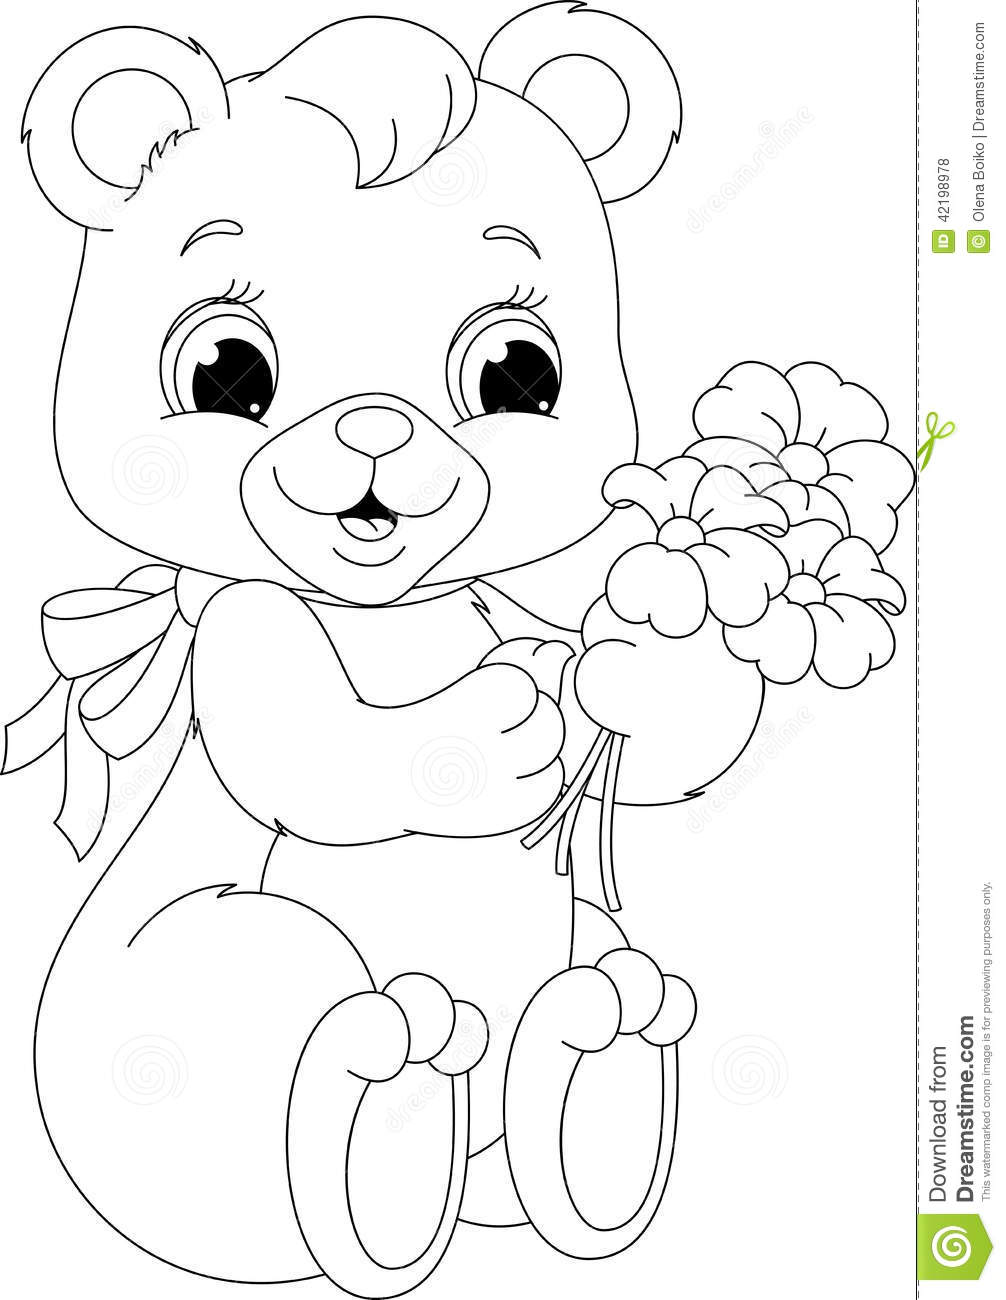 cute teddy bear coloring pages image of teddy bear coloring pages